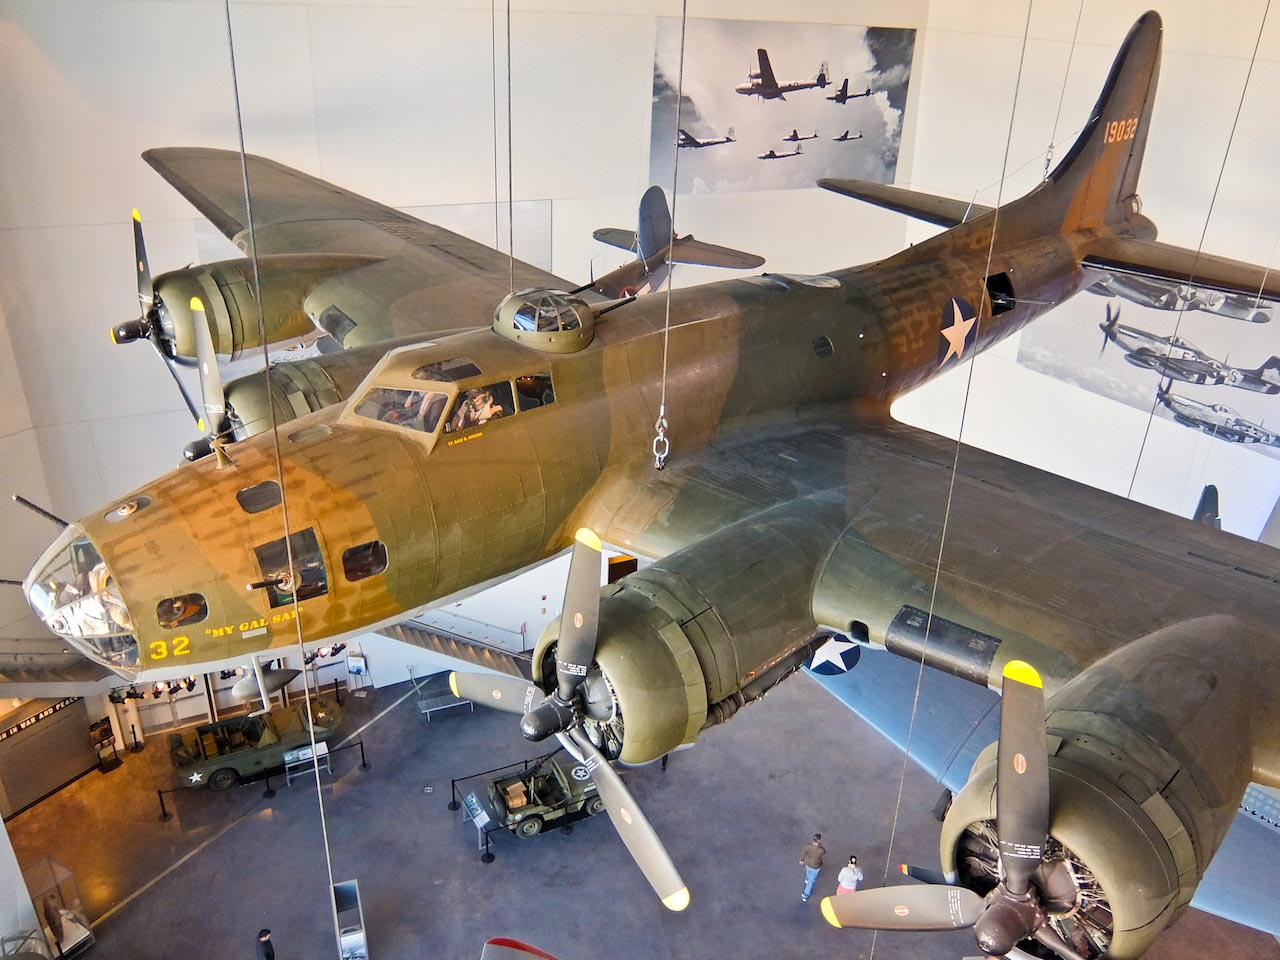 B17 at National WW2 Museum, New Orleans